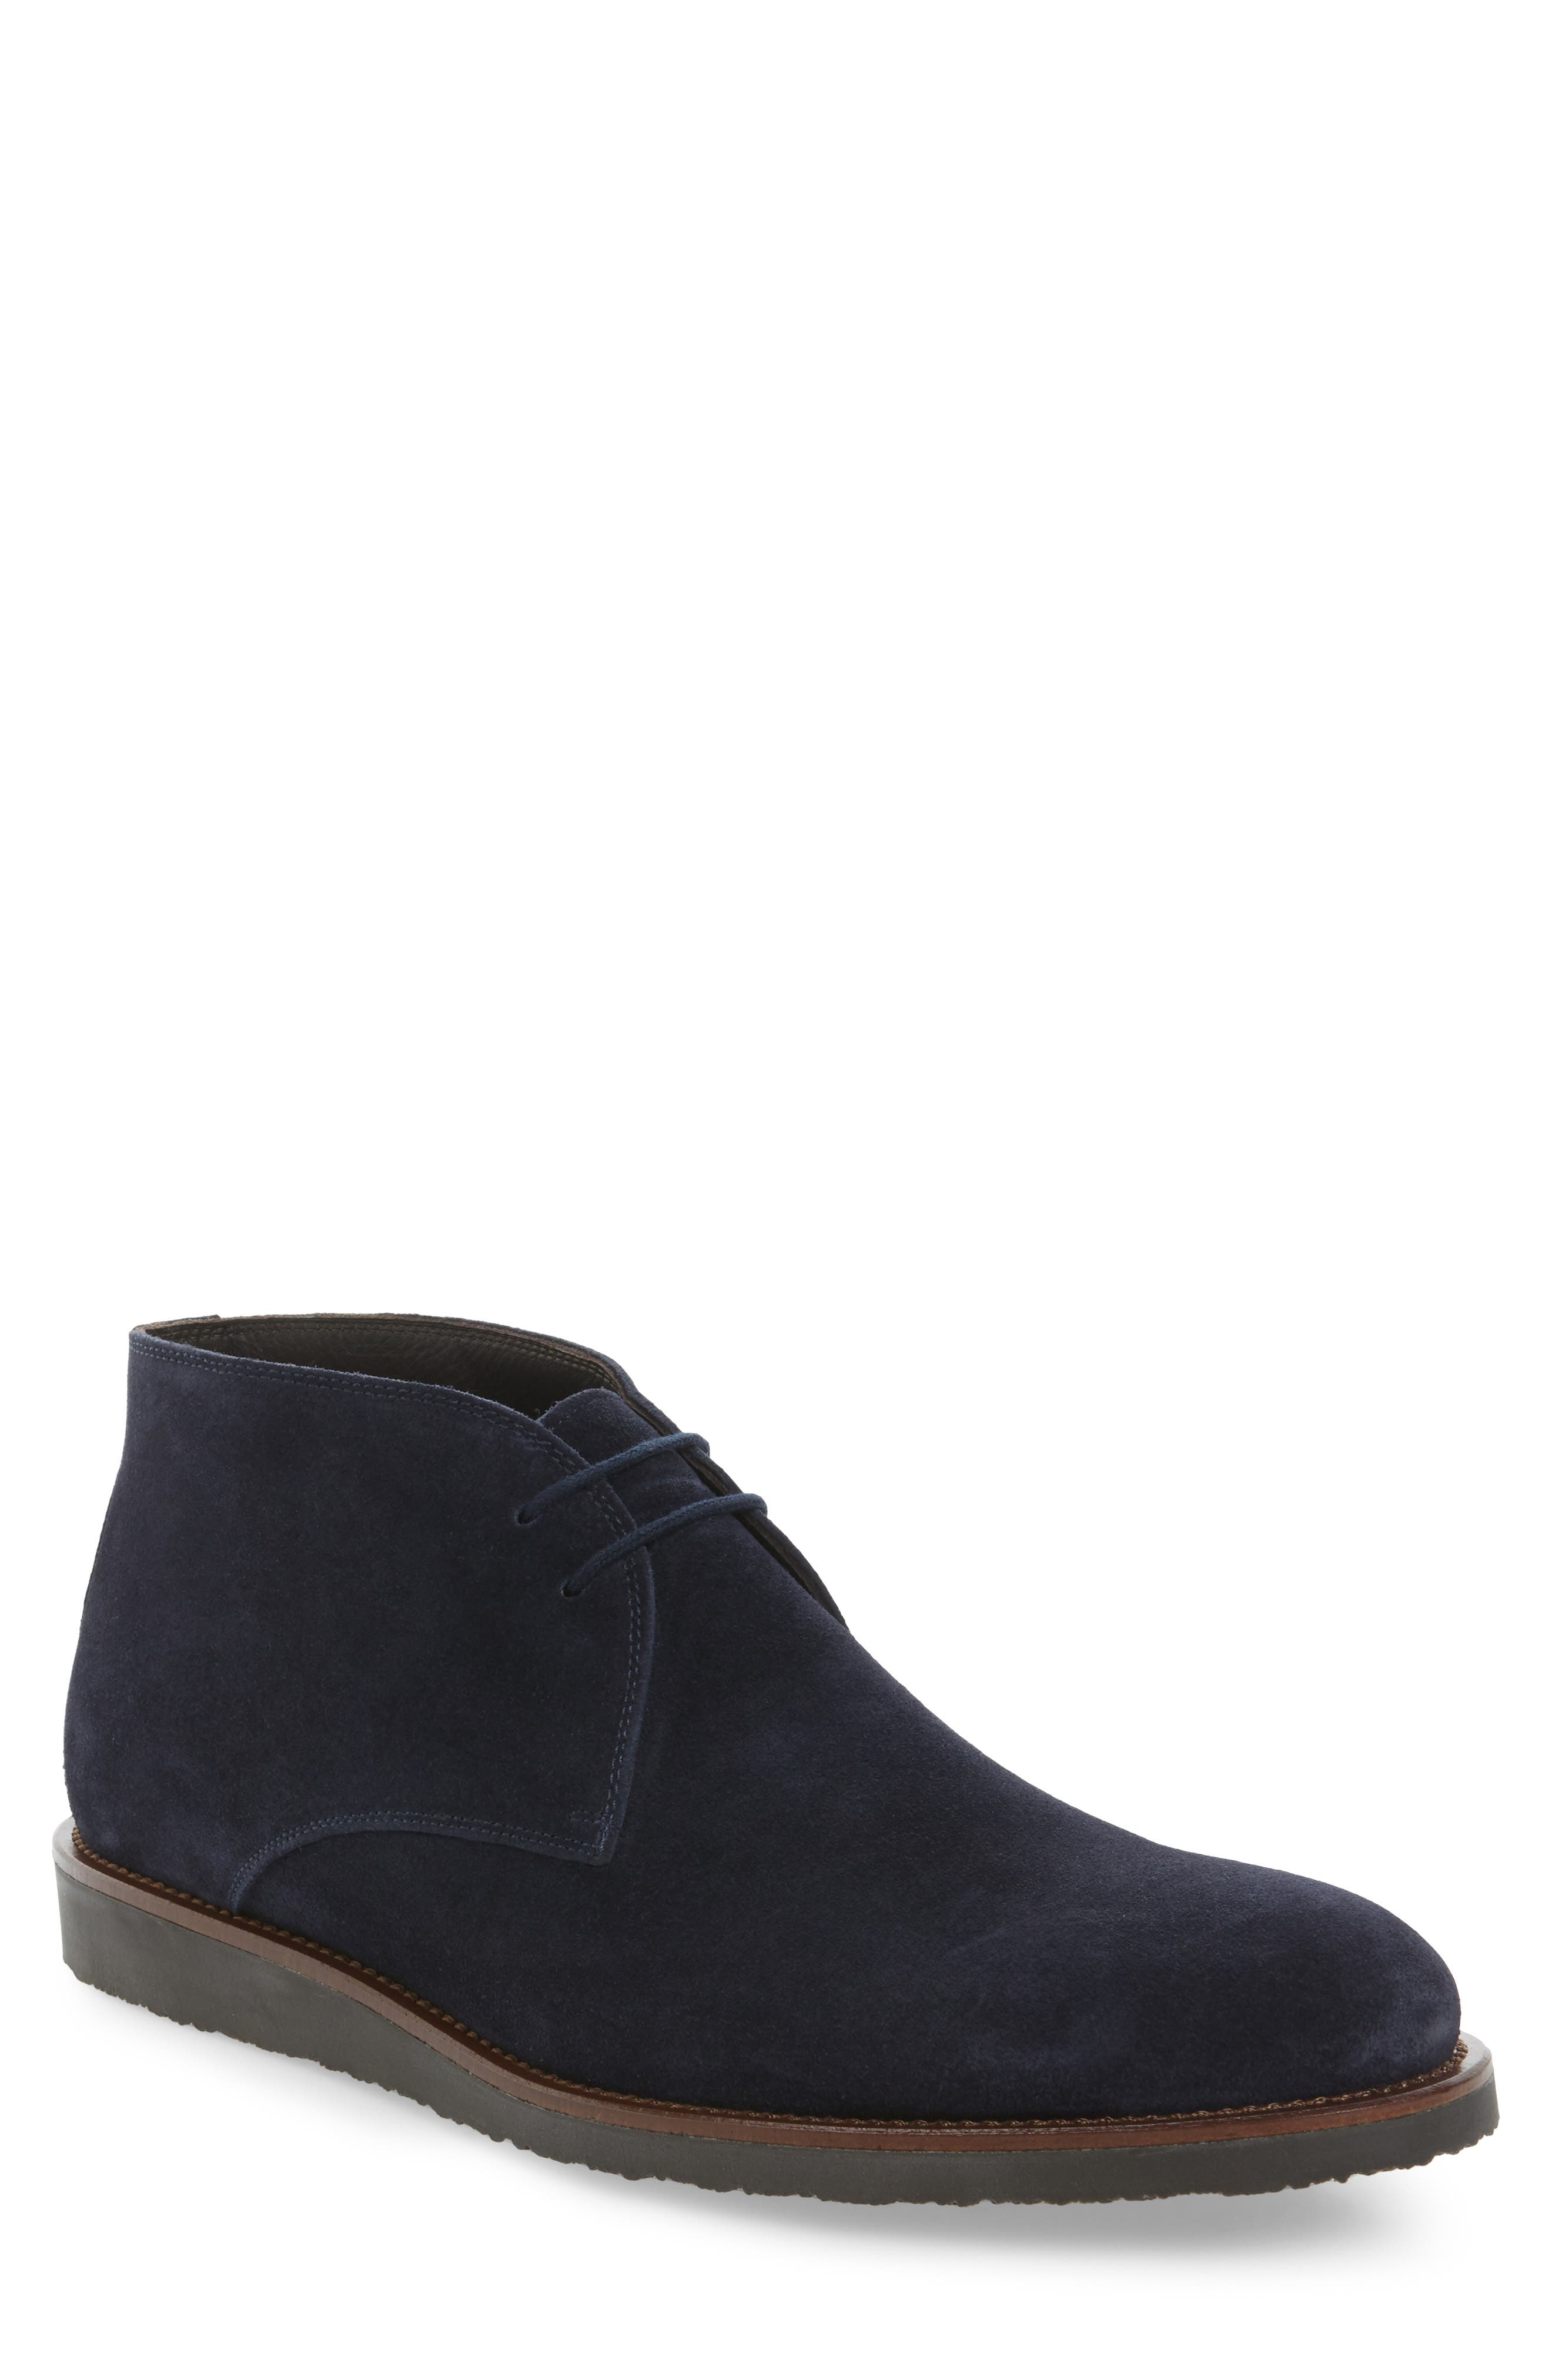 Franklin Chukka Boot,                             Main thumbnail 1, color,                             Blue Suede